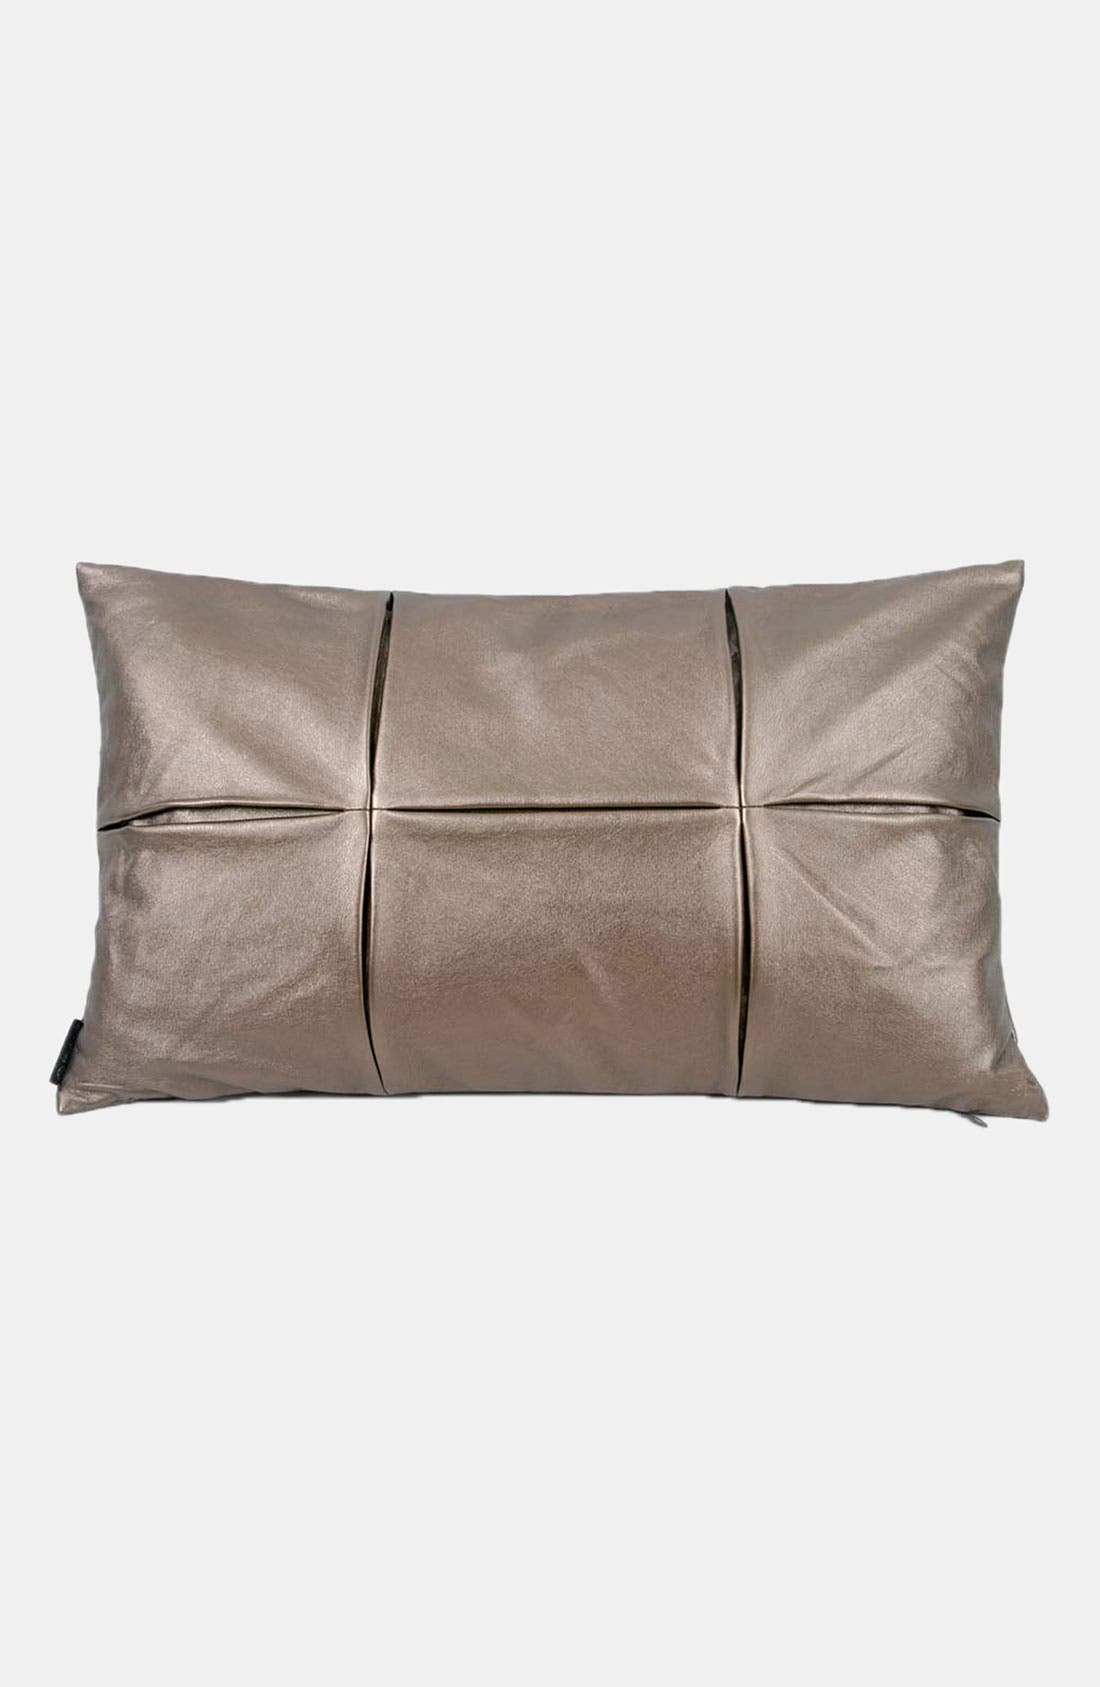 Alternate Image 1 Selected - Blissliving Home 'Society' Faux Leather Pillow (Online Only)